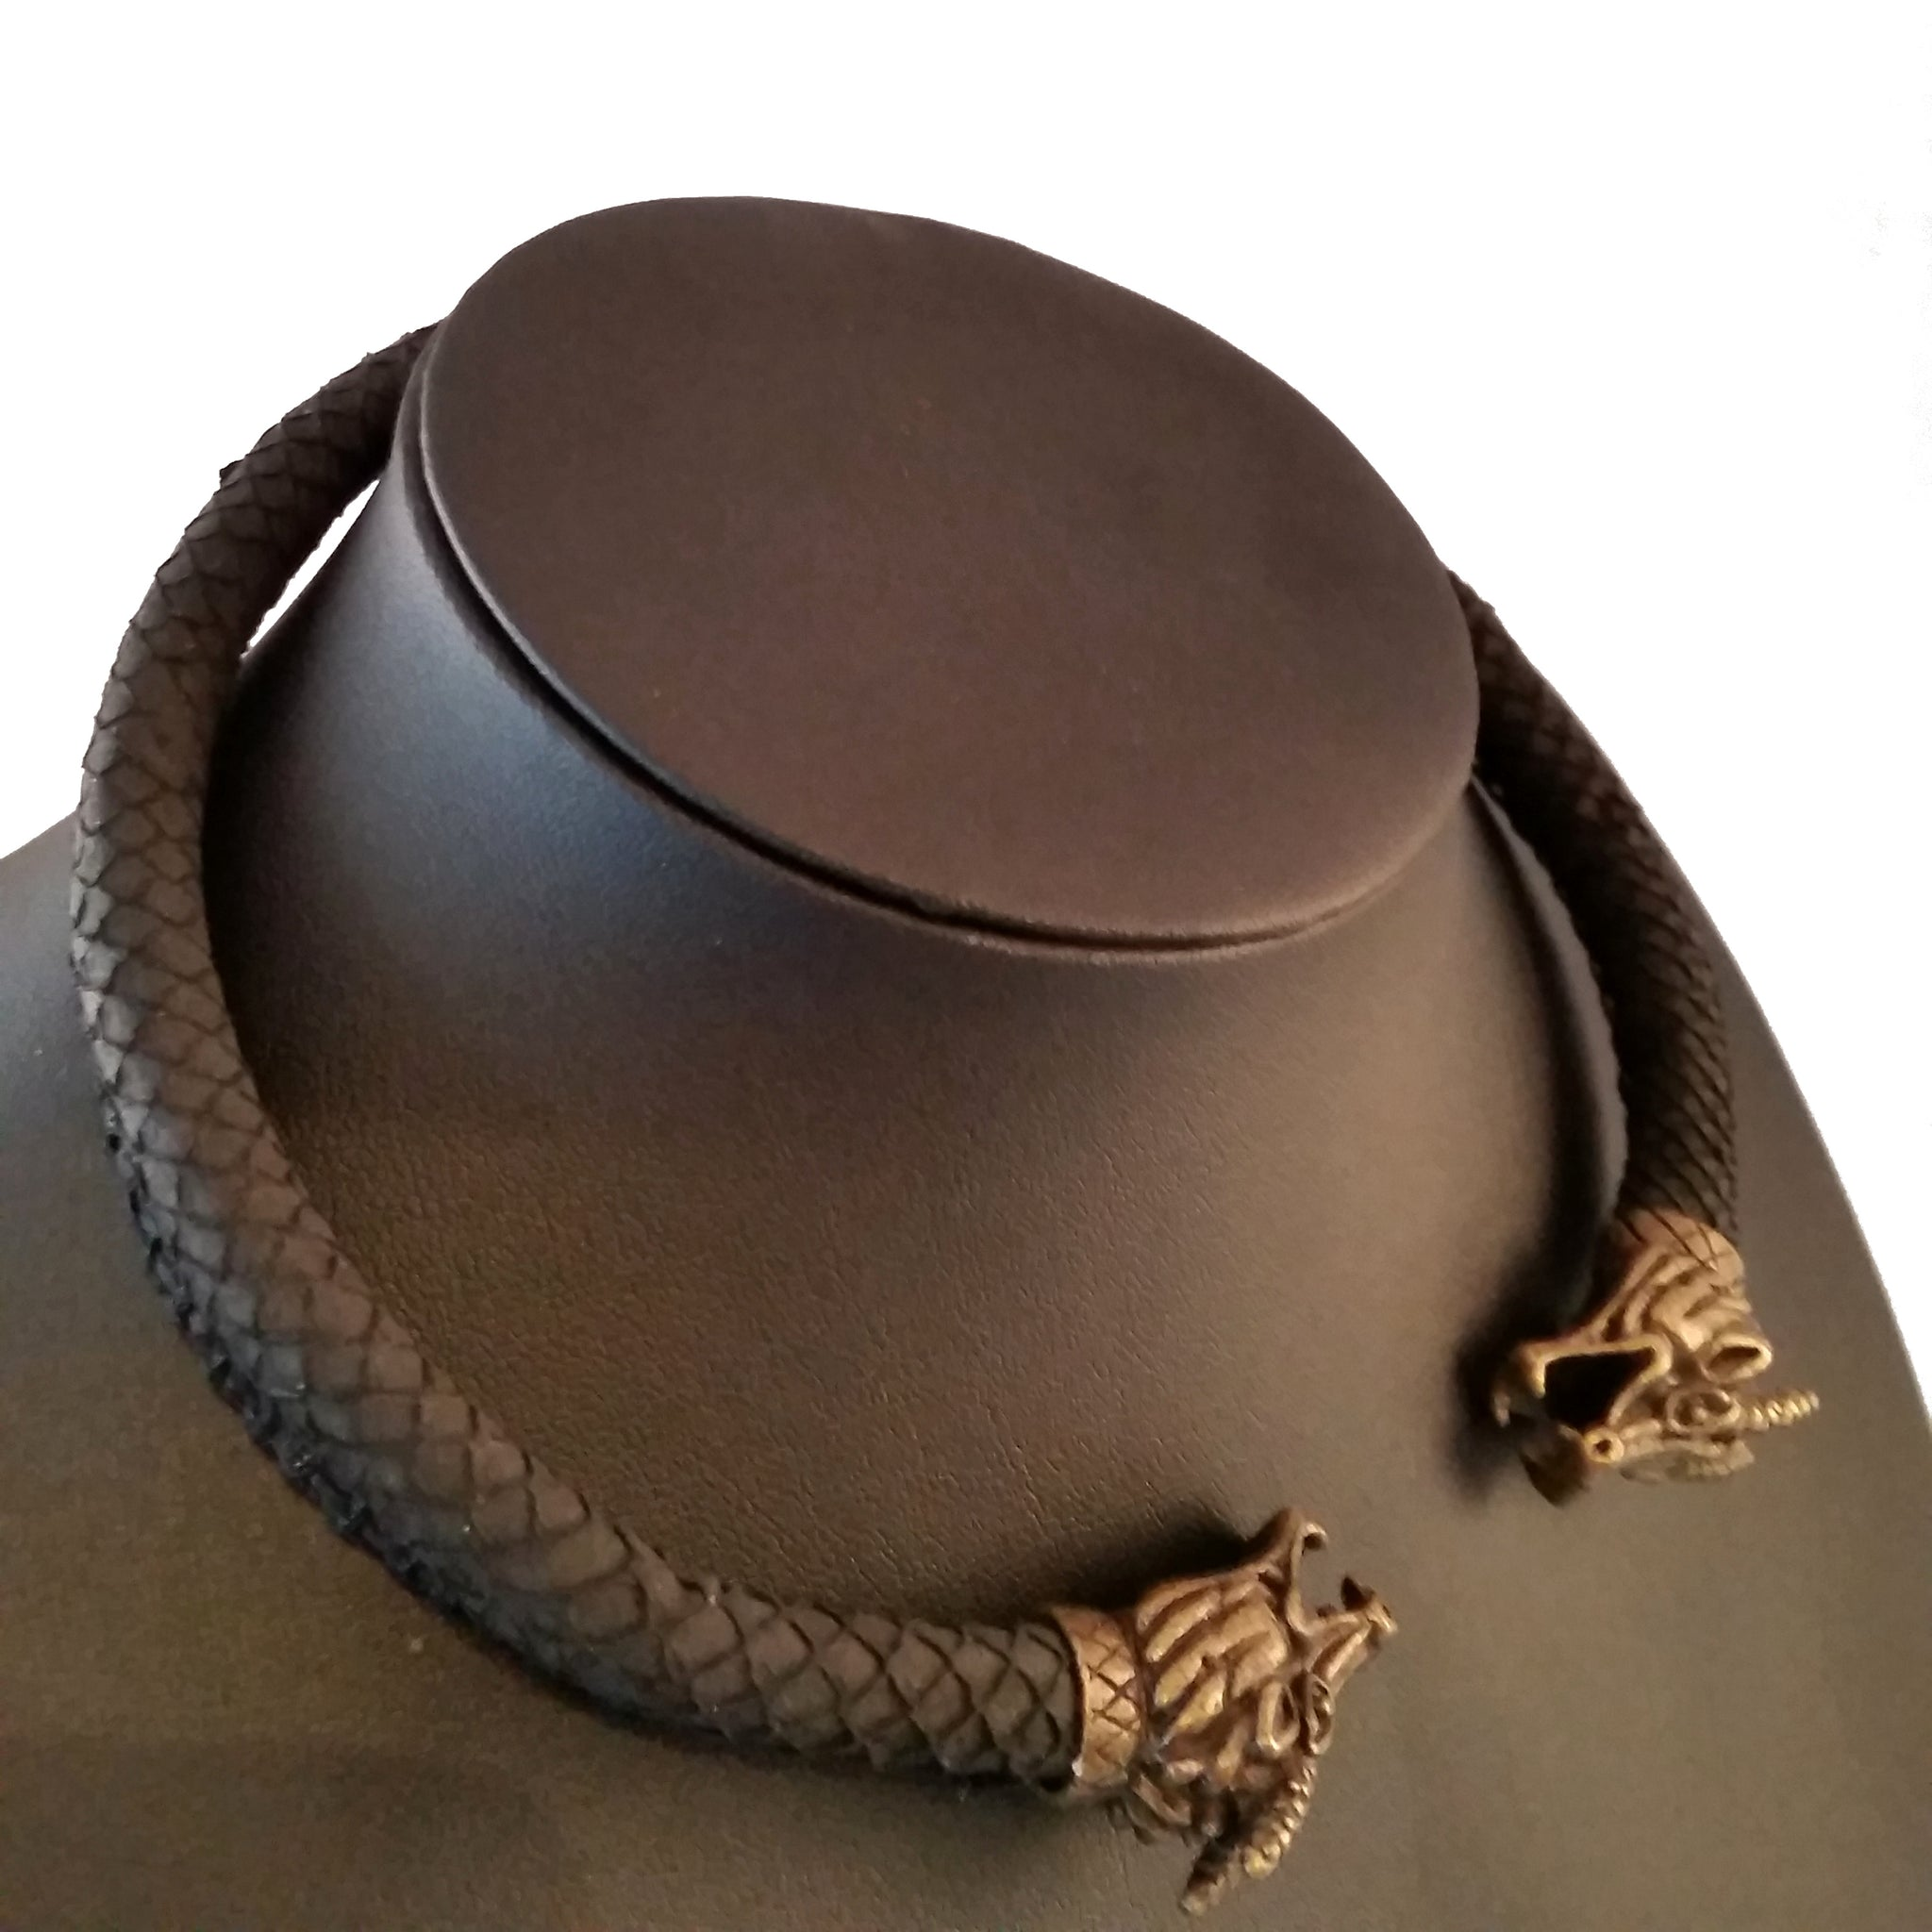 Black Dragon Scale Necklace Bronze Torc Viking LARP Rock